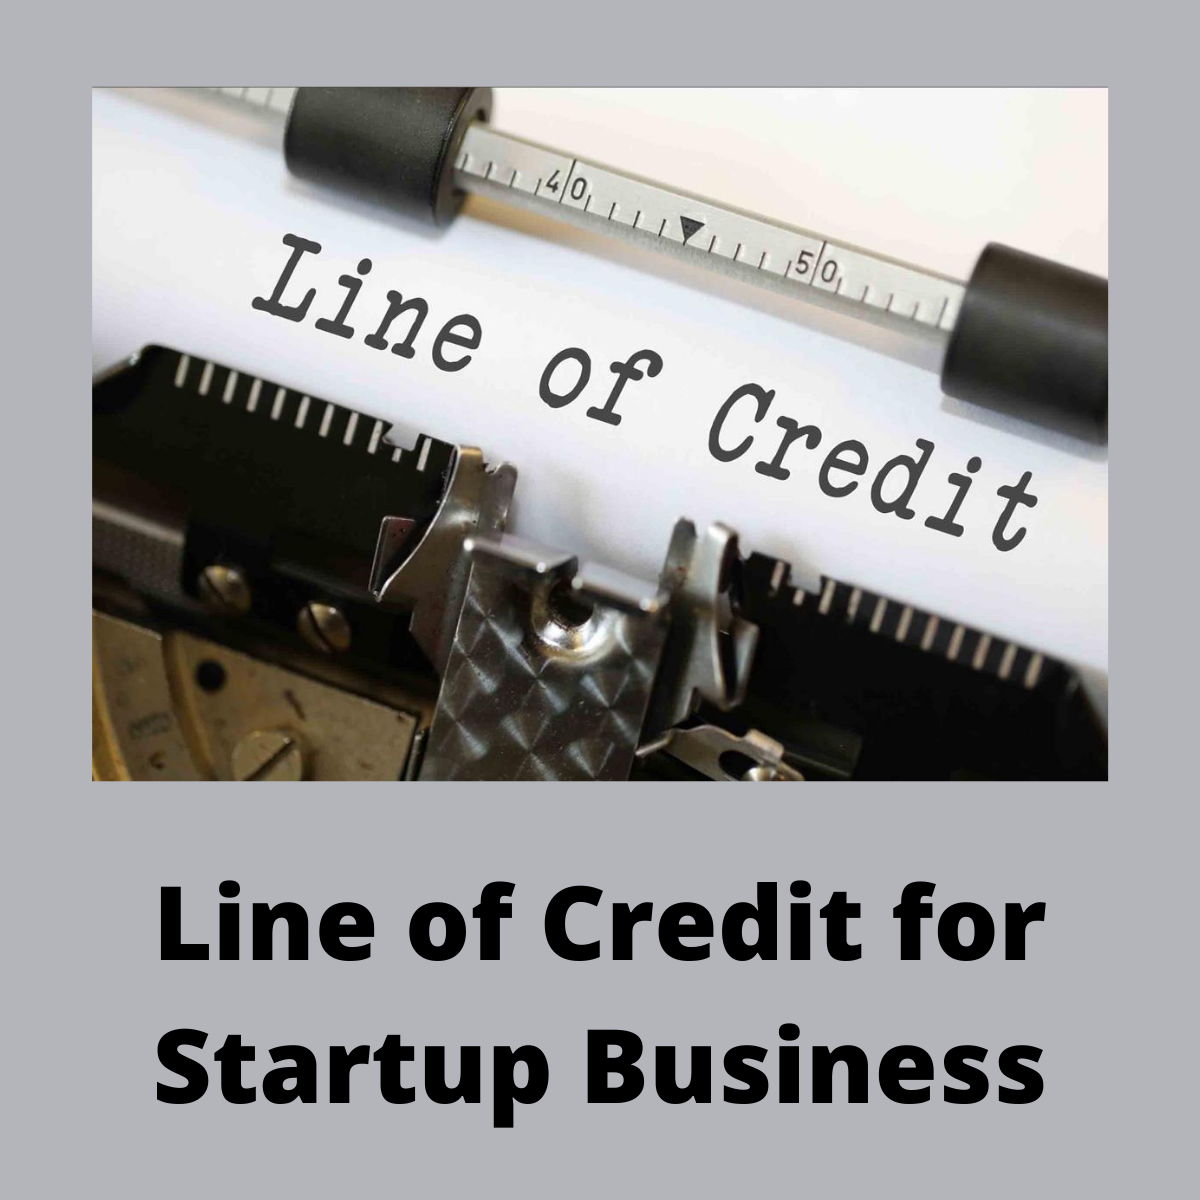 Line of Credit for Startup Business